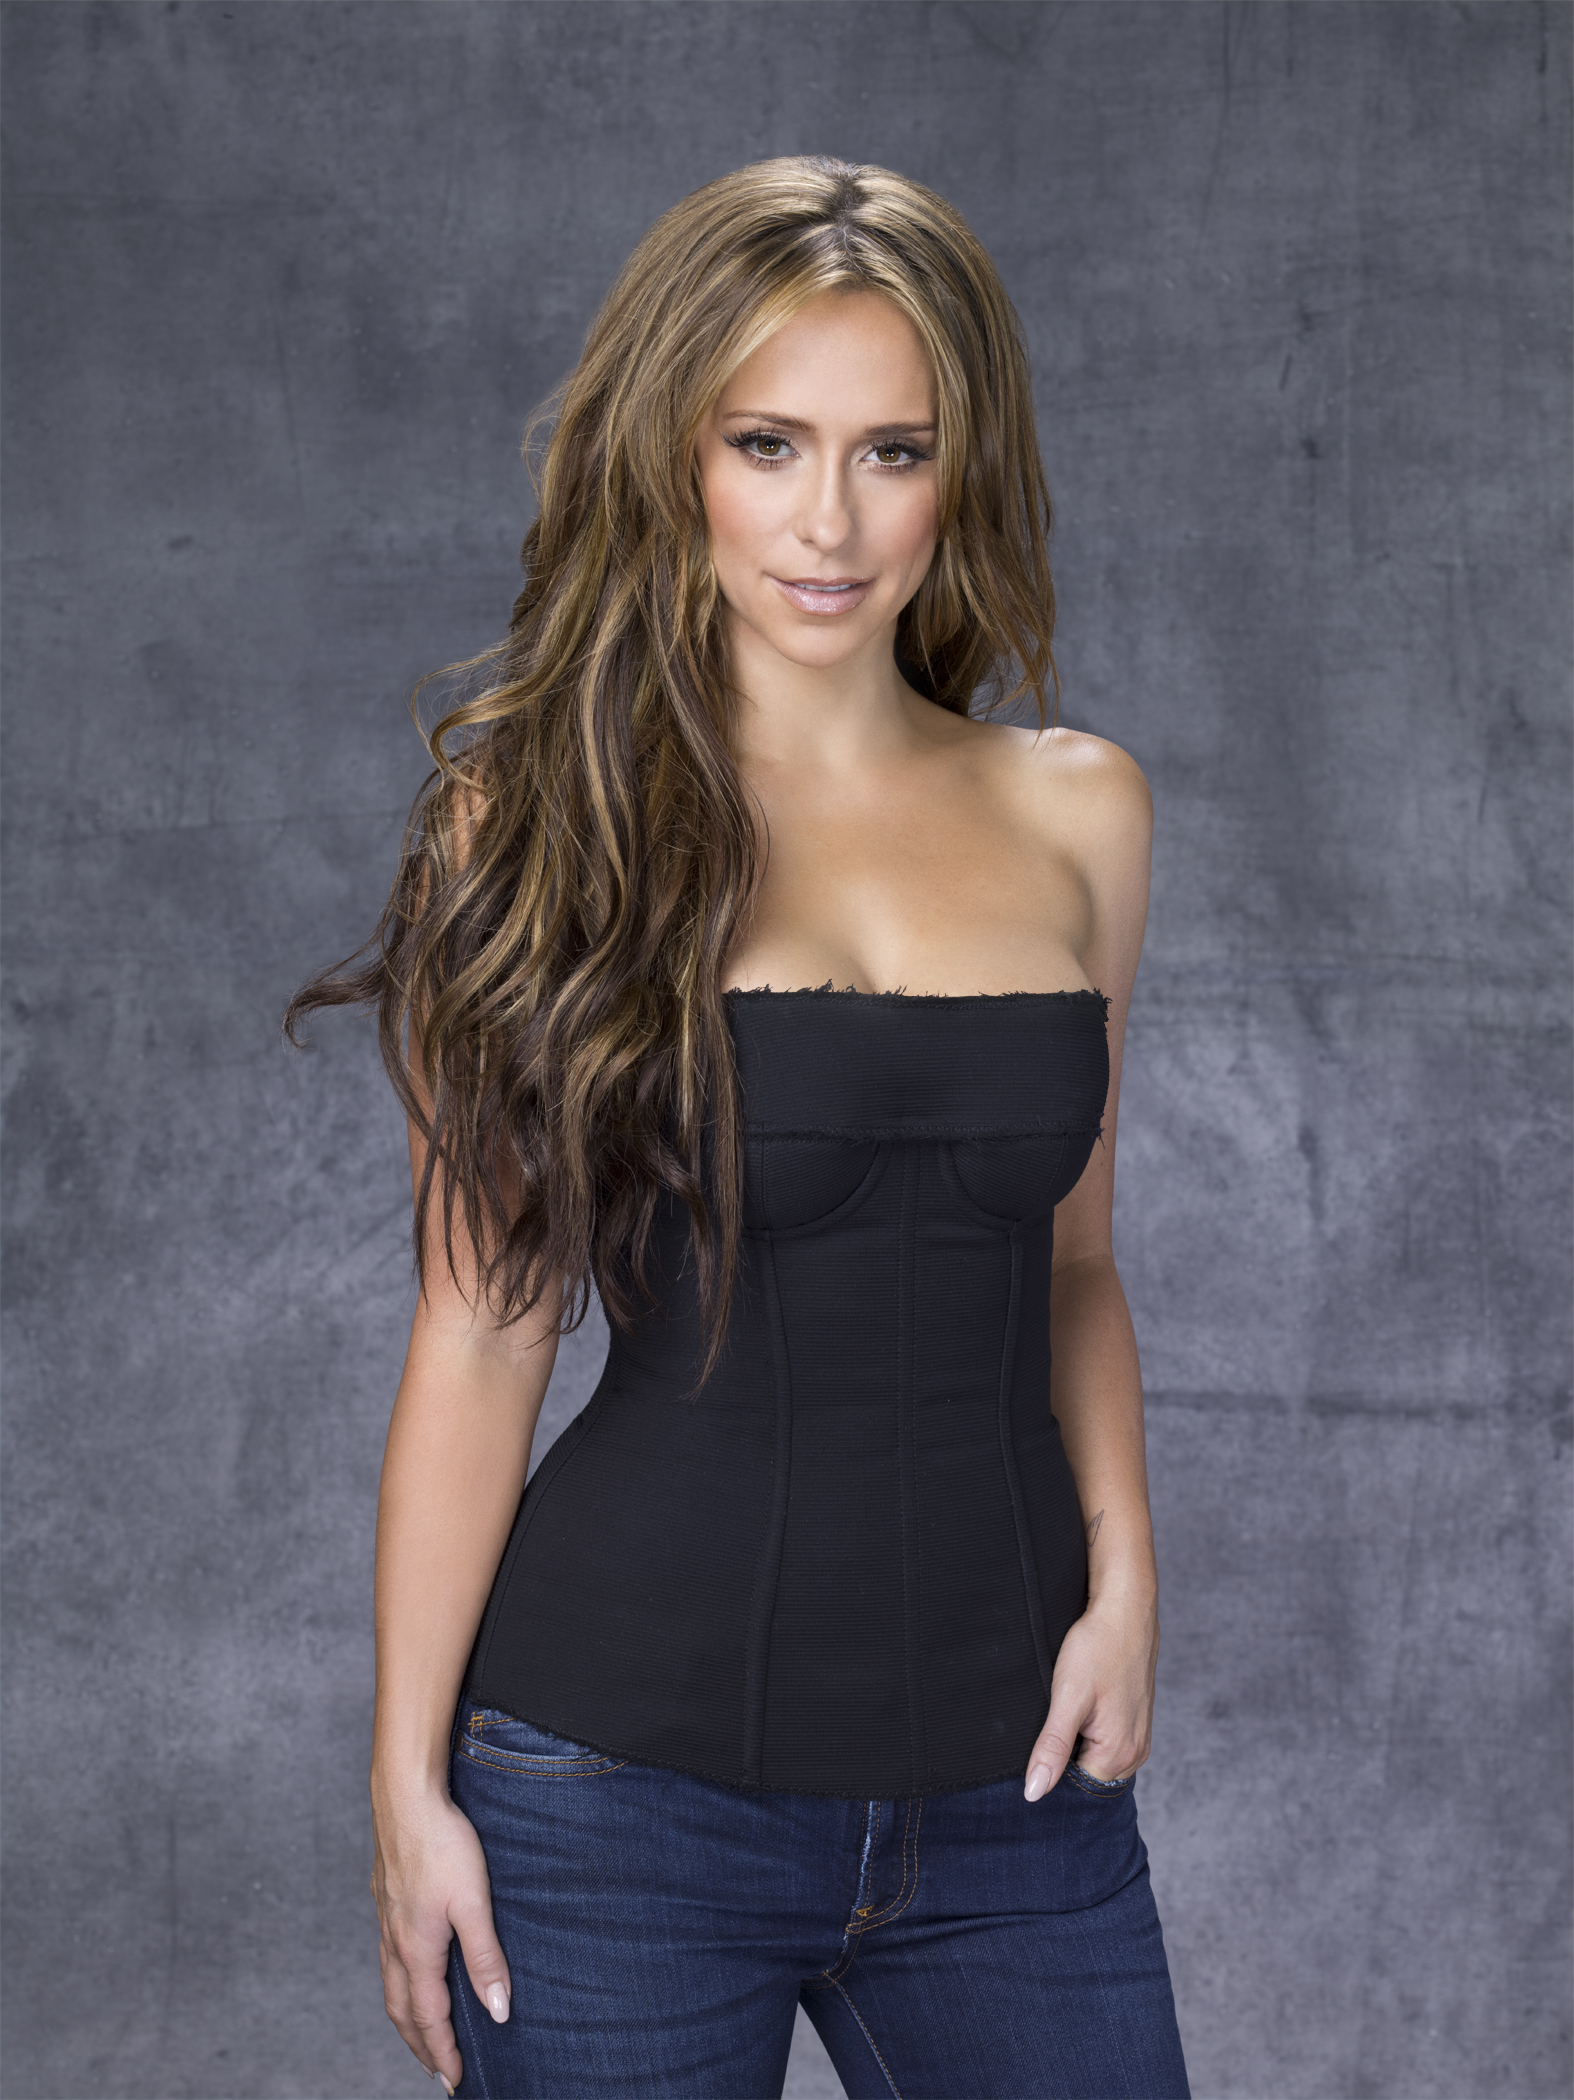 Jennifer Love Hewitt S Secret Sexiness Of A Double Life Giveaway Scrink Com Bring Me Up By